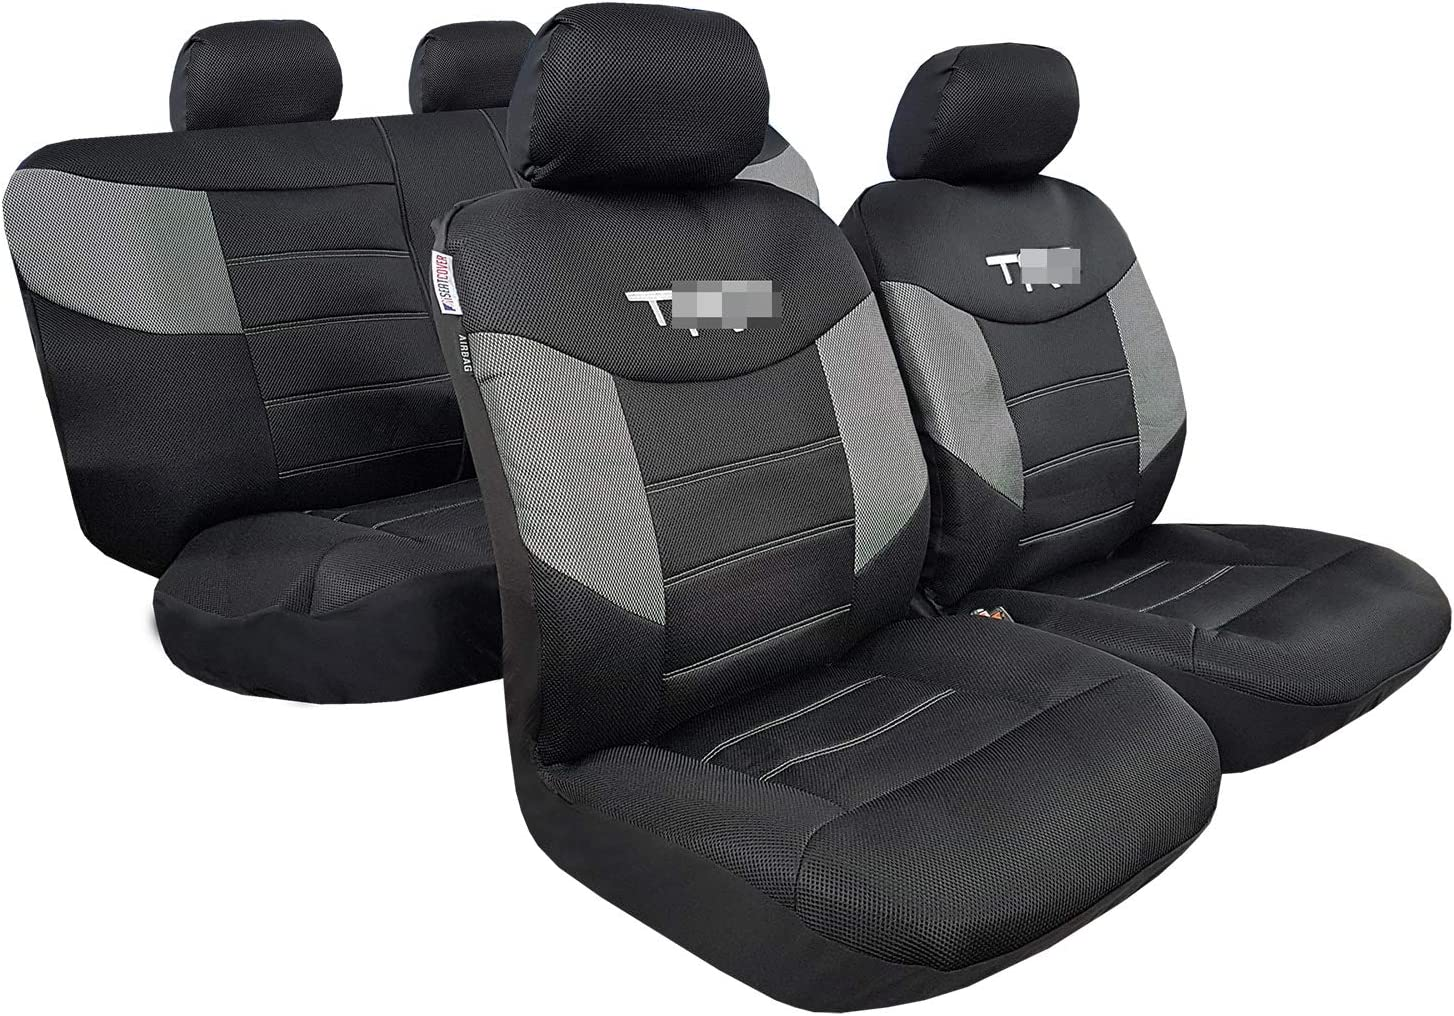 Heavy Duty 600 Denier Oxford Full Set Waterproof Seat Covers for Cars Trucks SUV Split Rear Bench Airbag Compatible ITAILORMAKER Canvas Seat Covers for Toyota Tacoma 4Runner Rav4